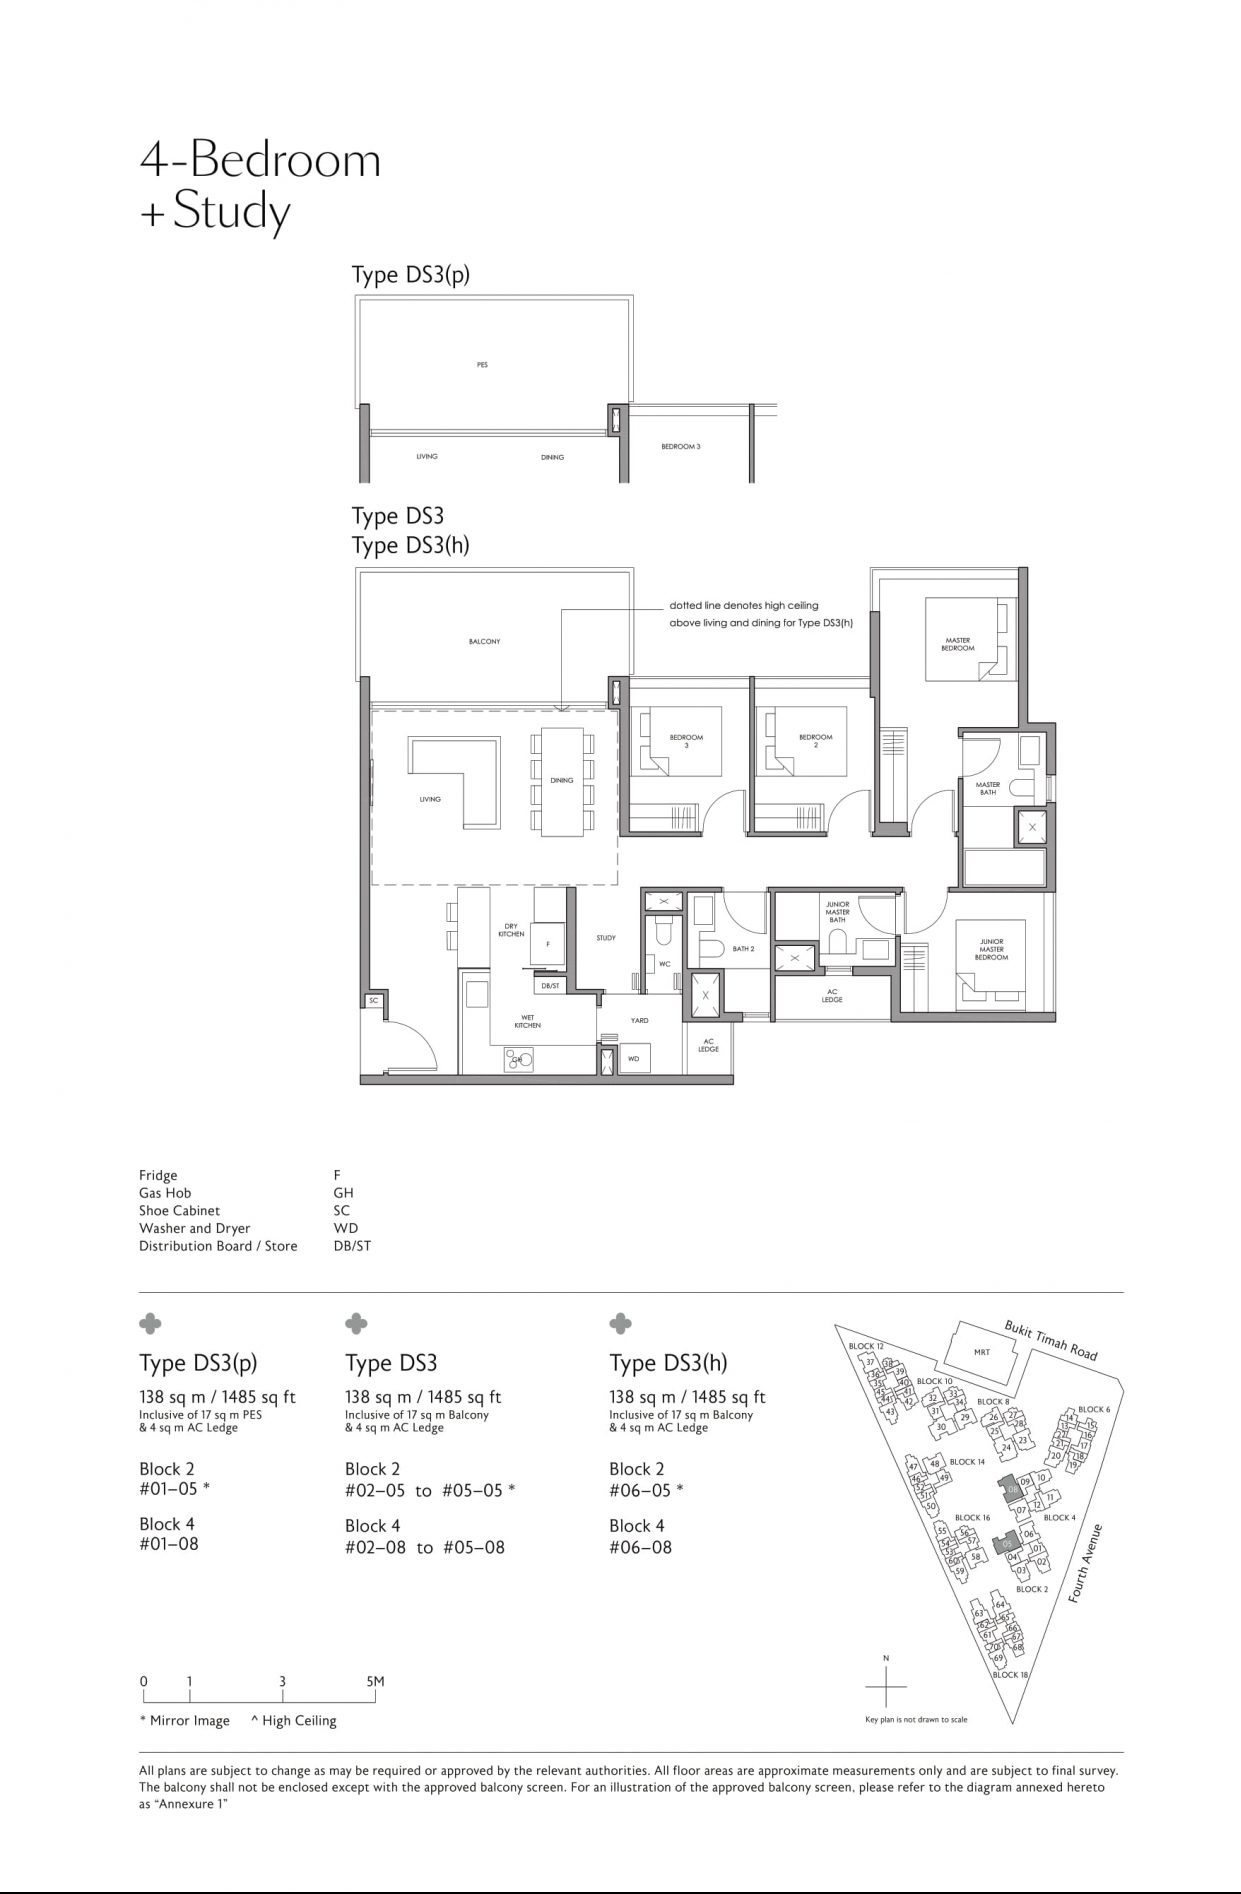 Fourth Avenue Residences' four-bedroom + study types